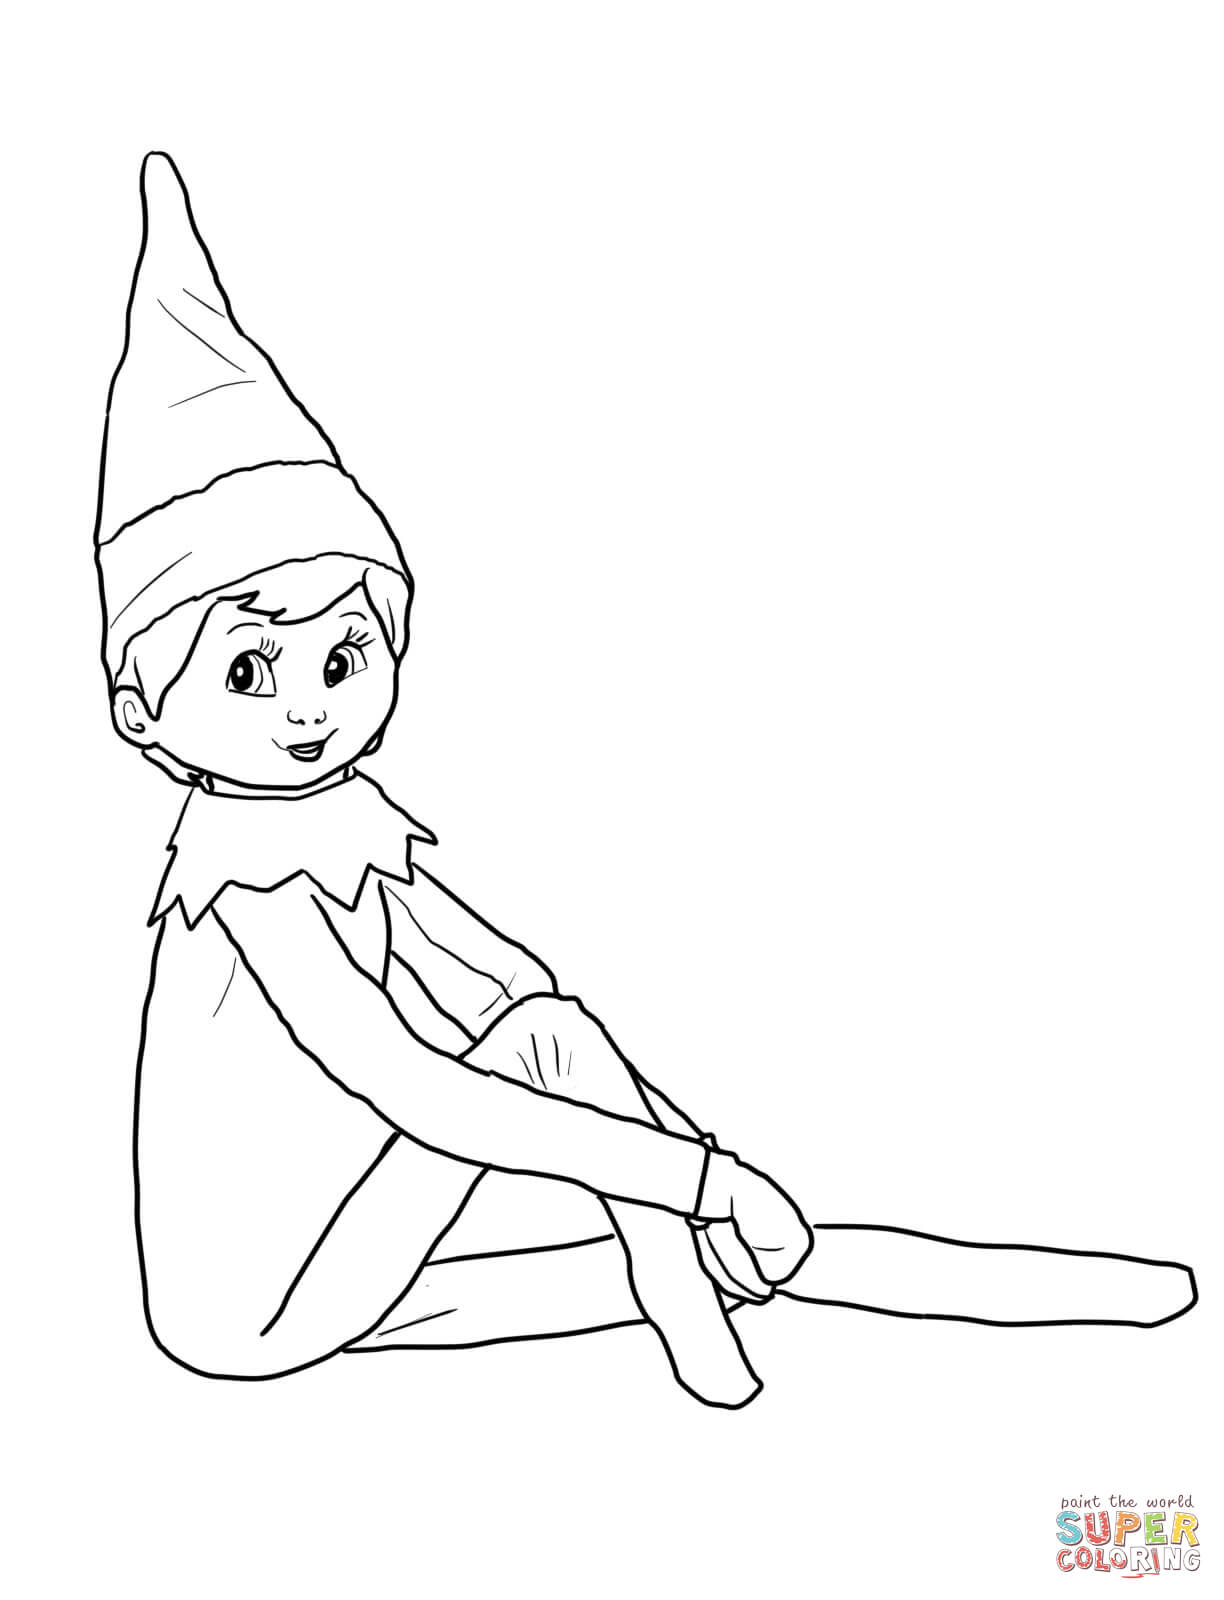 Elf Coloring Pages Printable